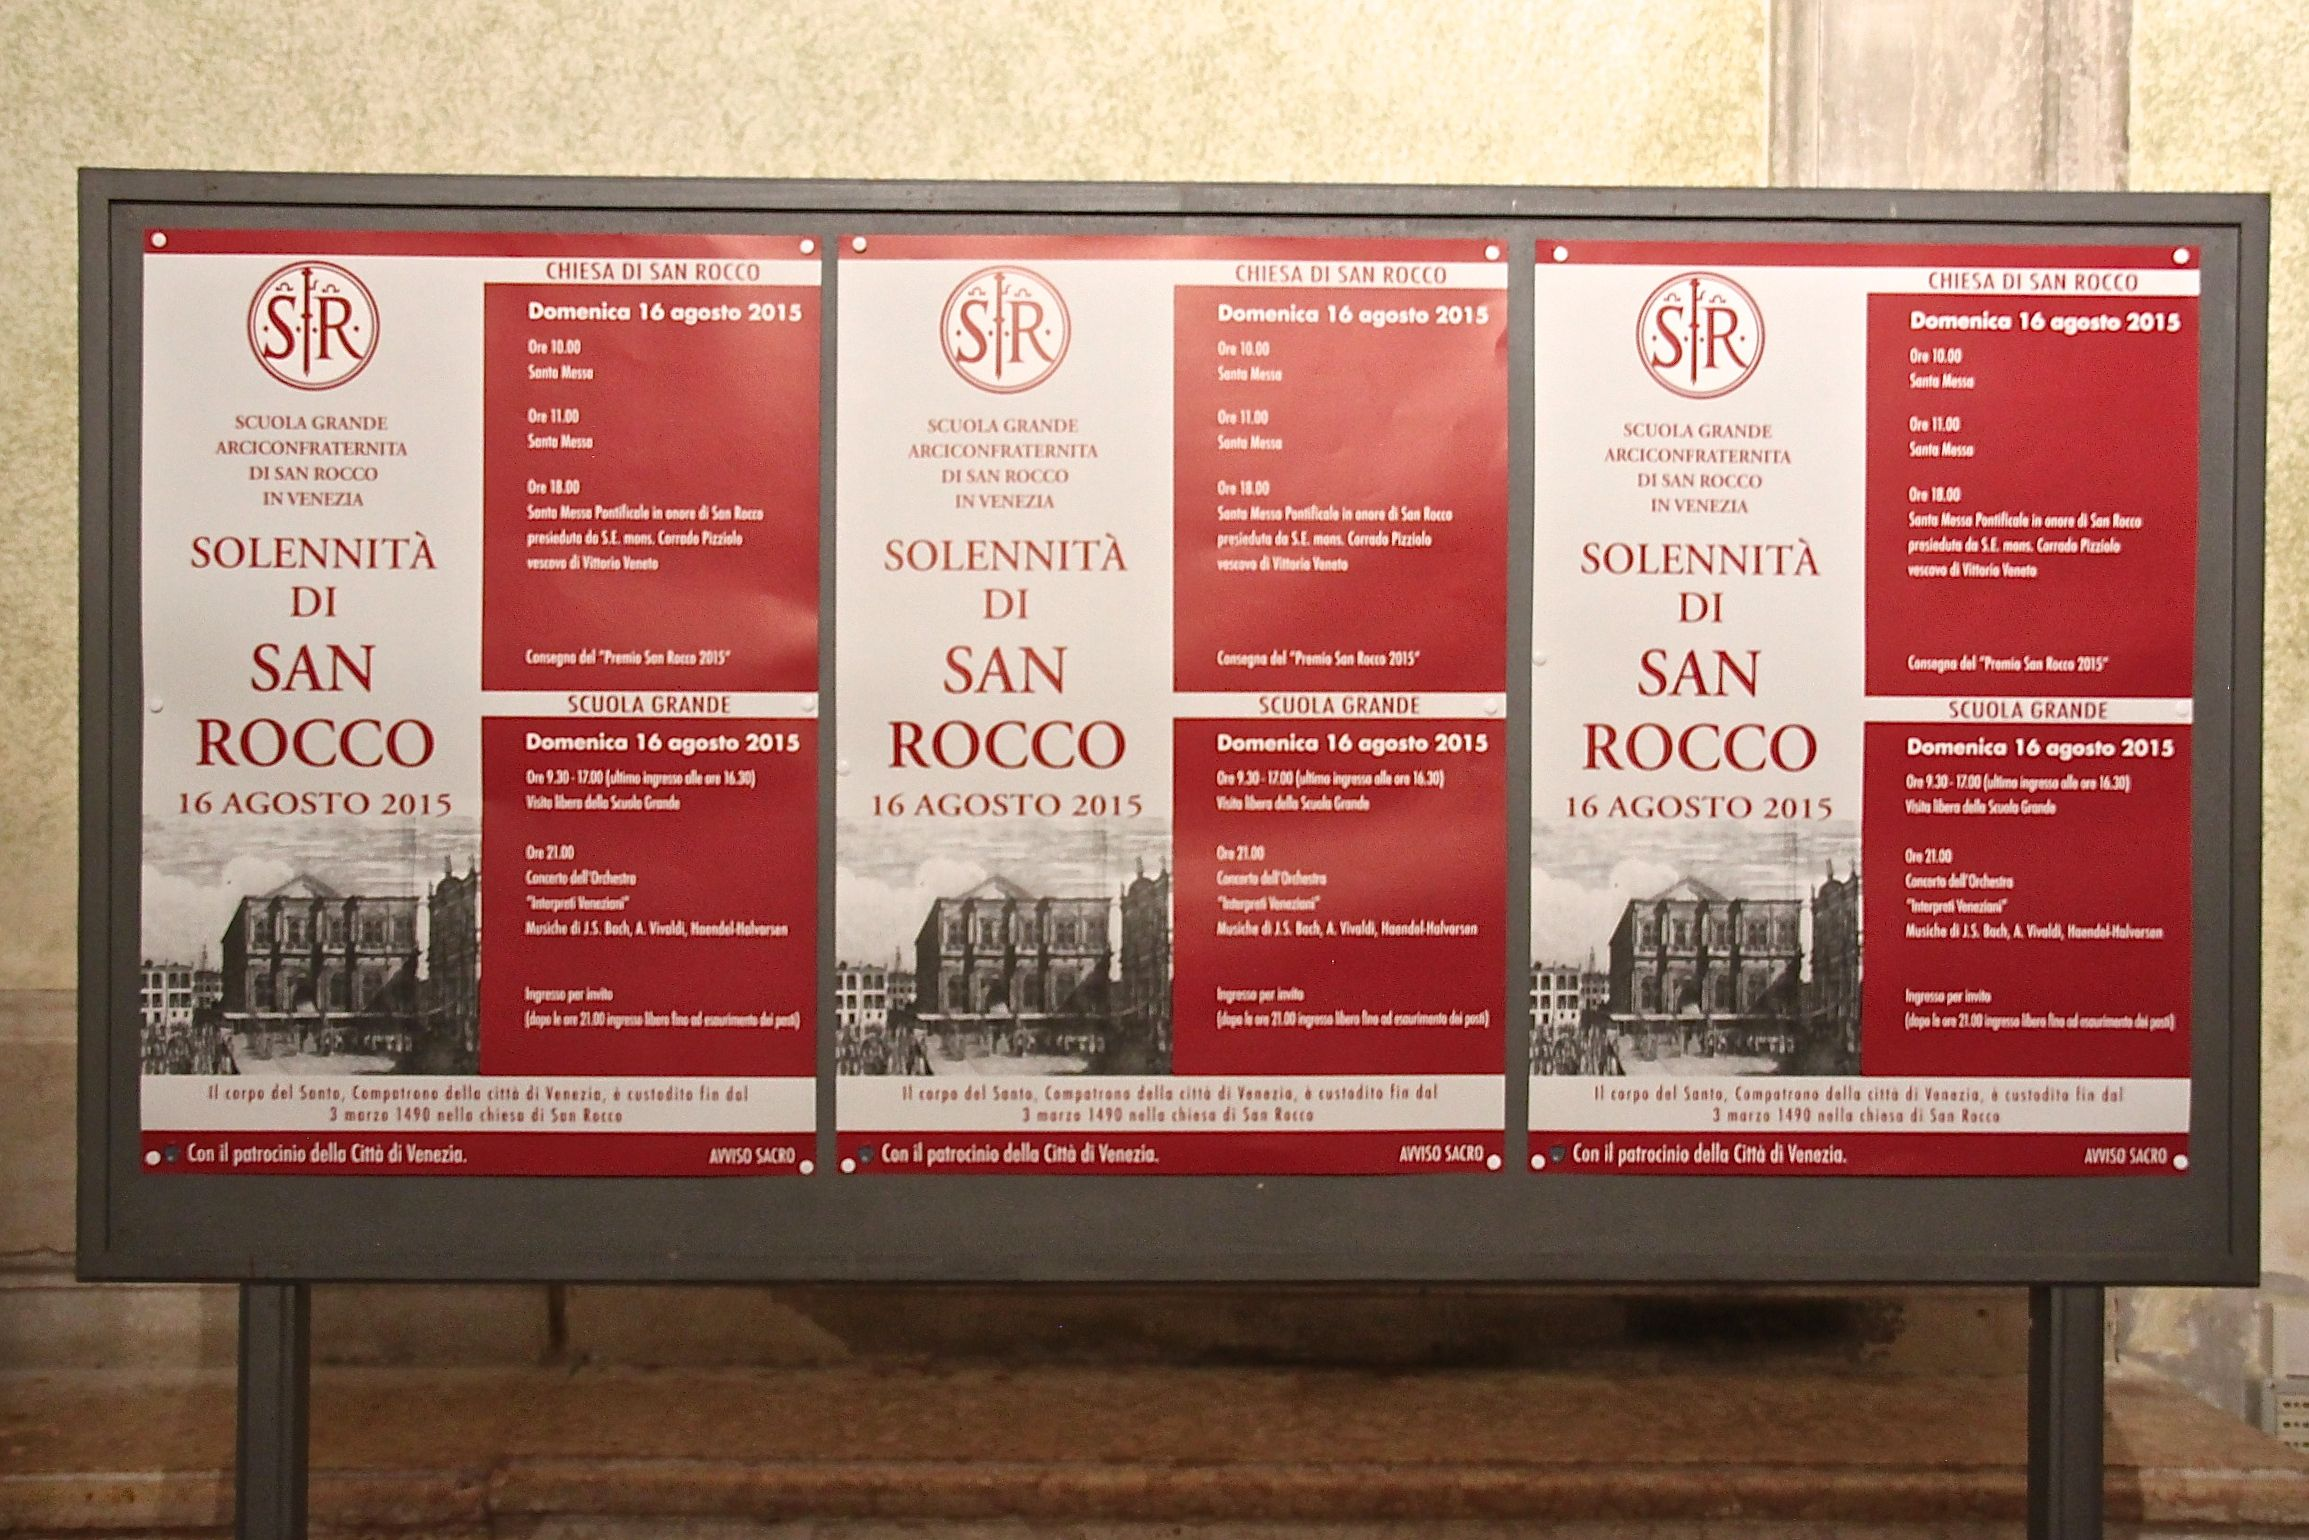 Posters announcing the festa or solennità di San Rocco on August 16th